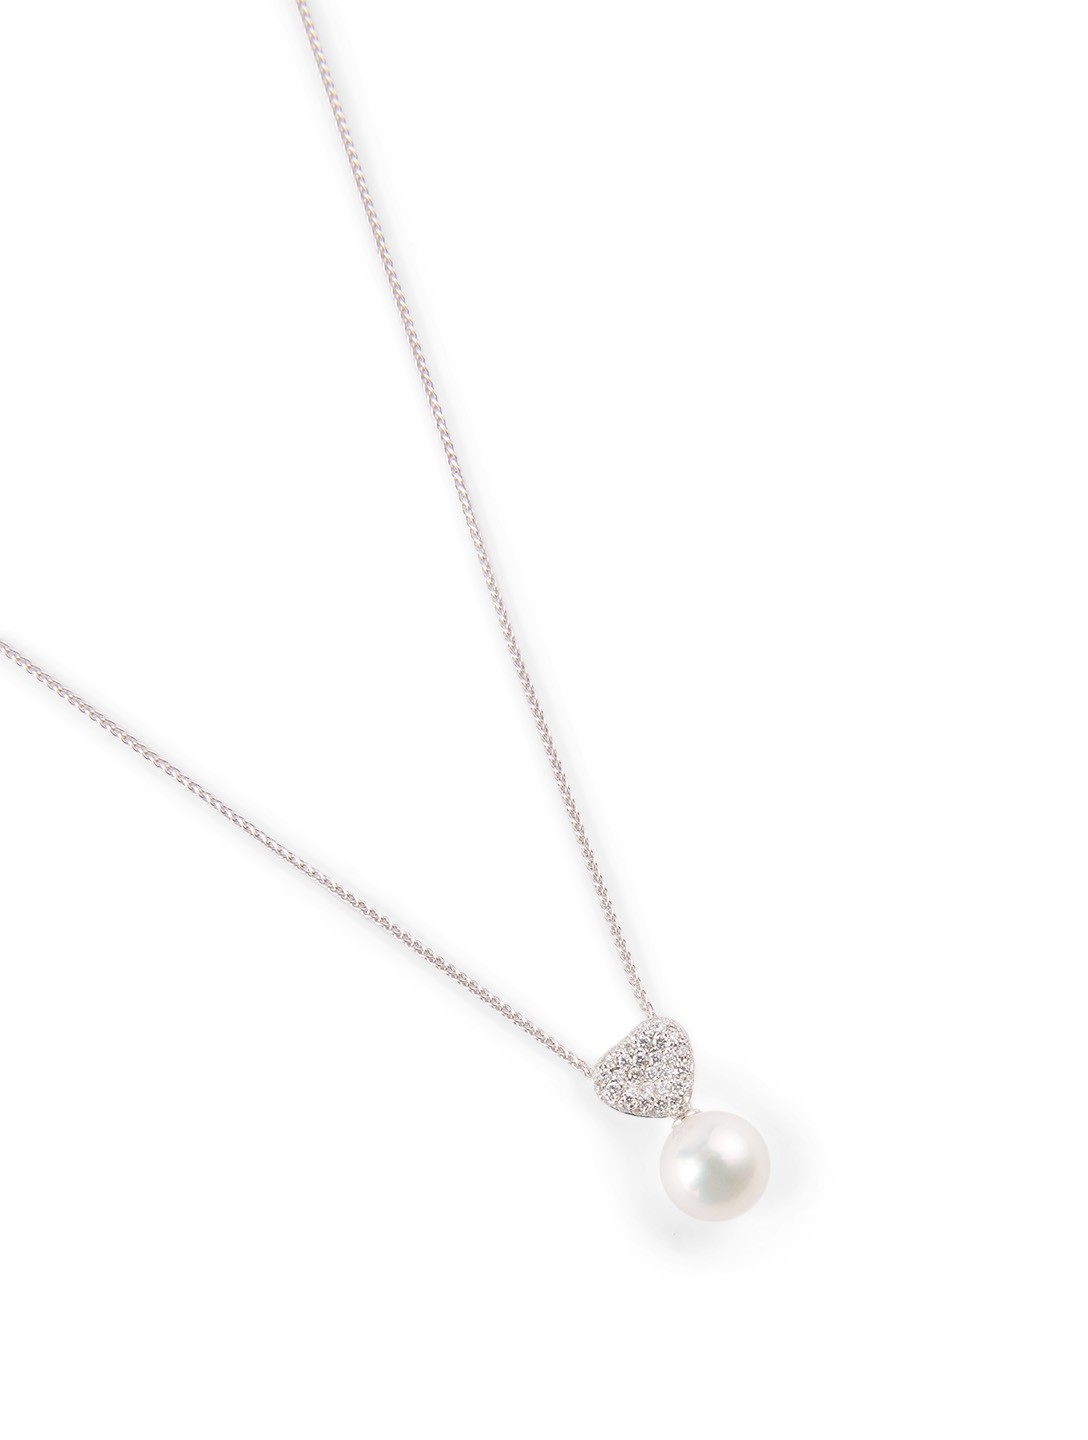 YOKO LONDON 18K White Gold Pearl And Diamond Pendant Necklace Women's Metallic